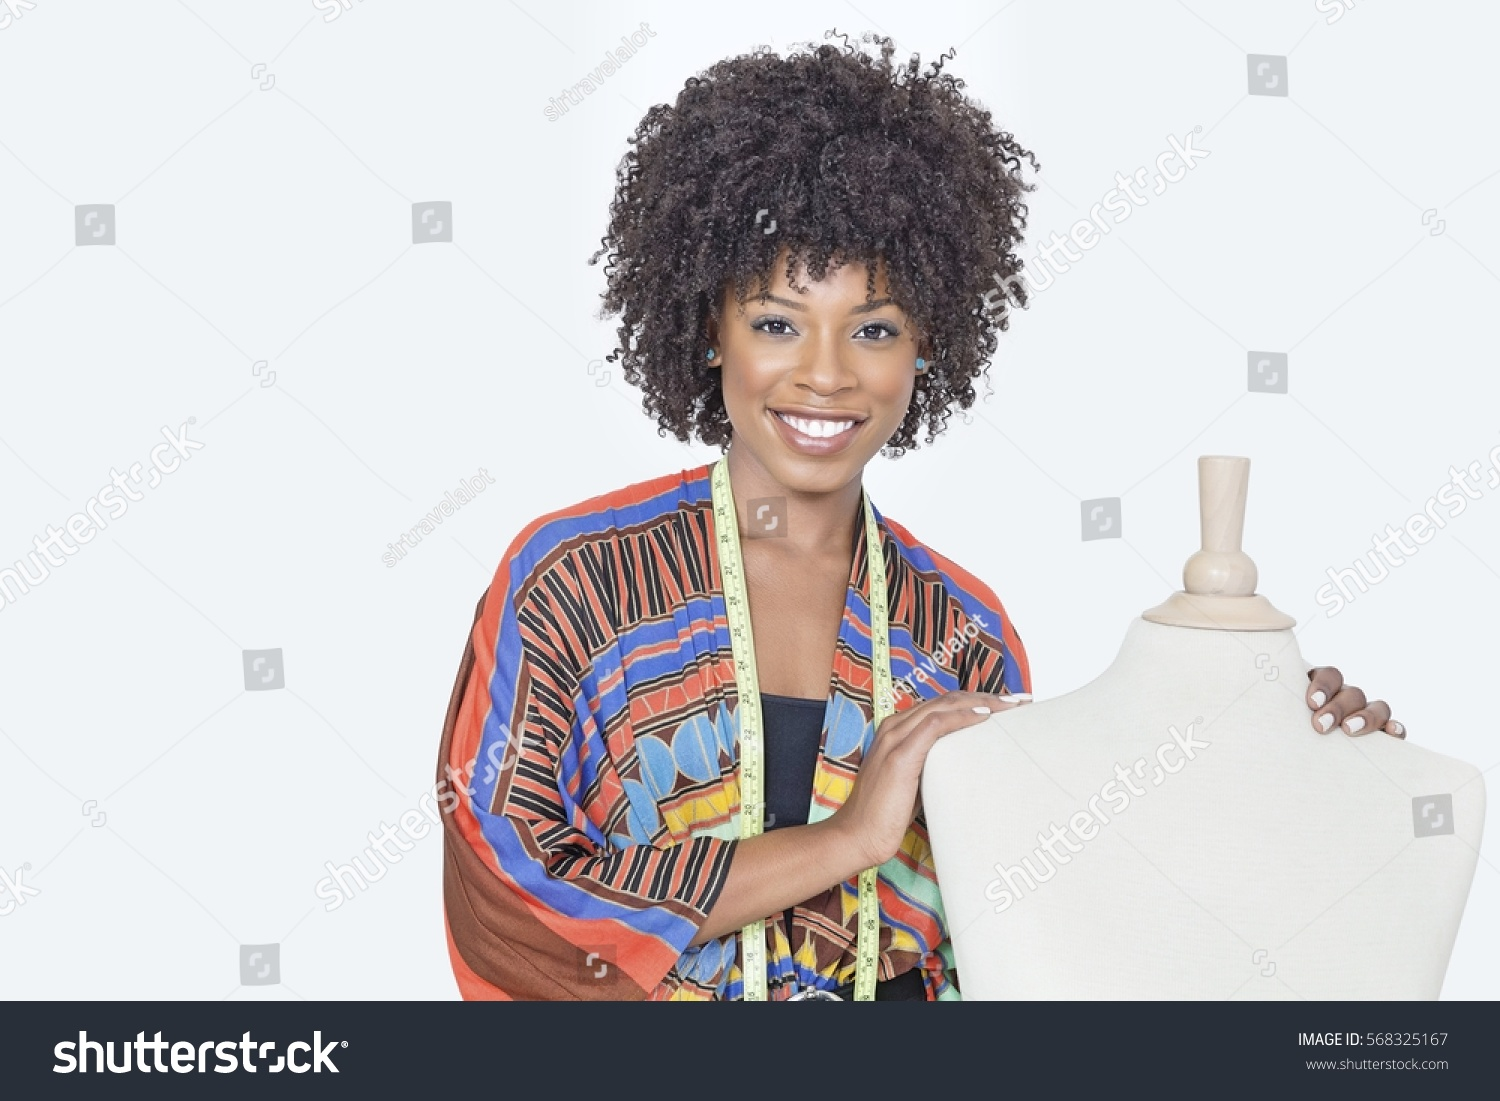 Portrait African American Female Fashion Designer Stock Photo Edit Now 568325167